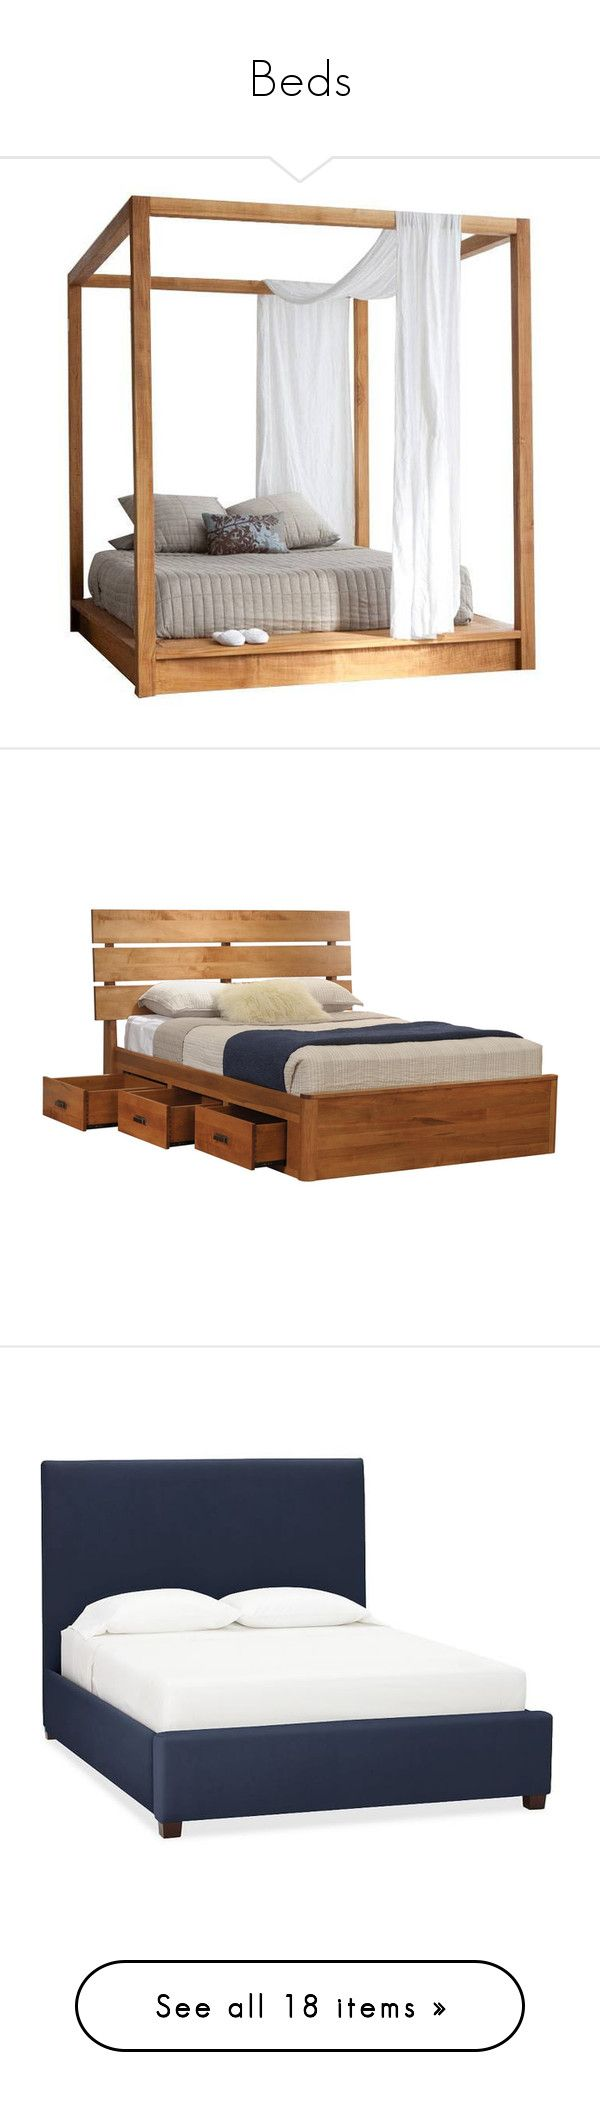 """""""Beds"""" by tiryn13leucine ❤ liked on Polyvore featuring home, furniture, beds, bed, king size canopy bed, king canopy bed, king size bed, hardware furniture, king size furniture and double storage bed"""